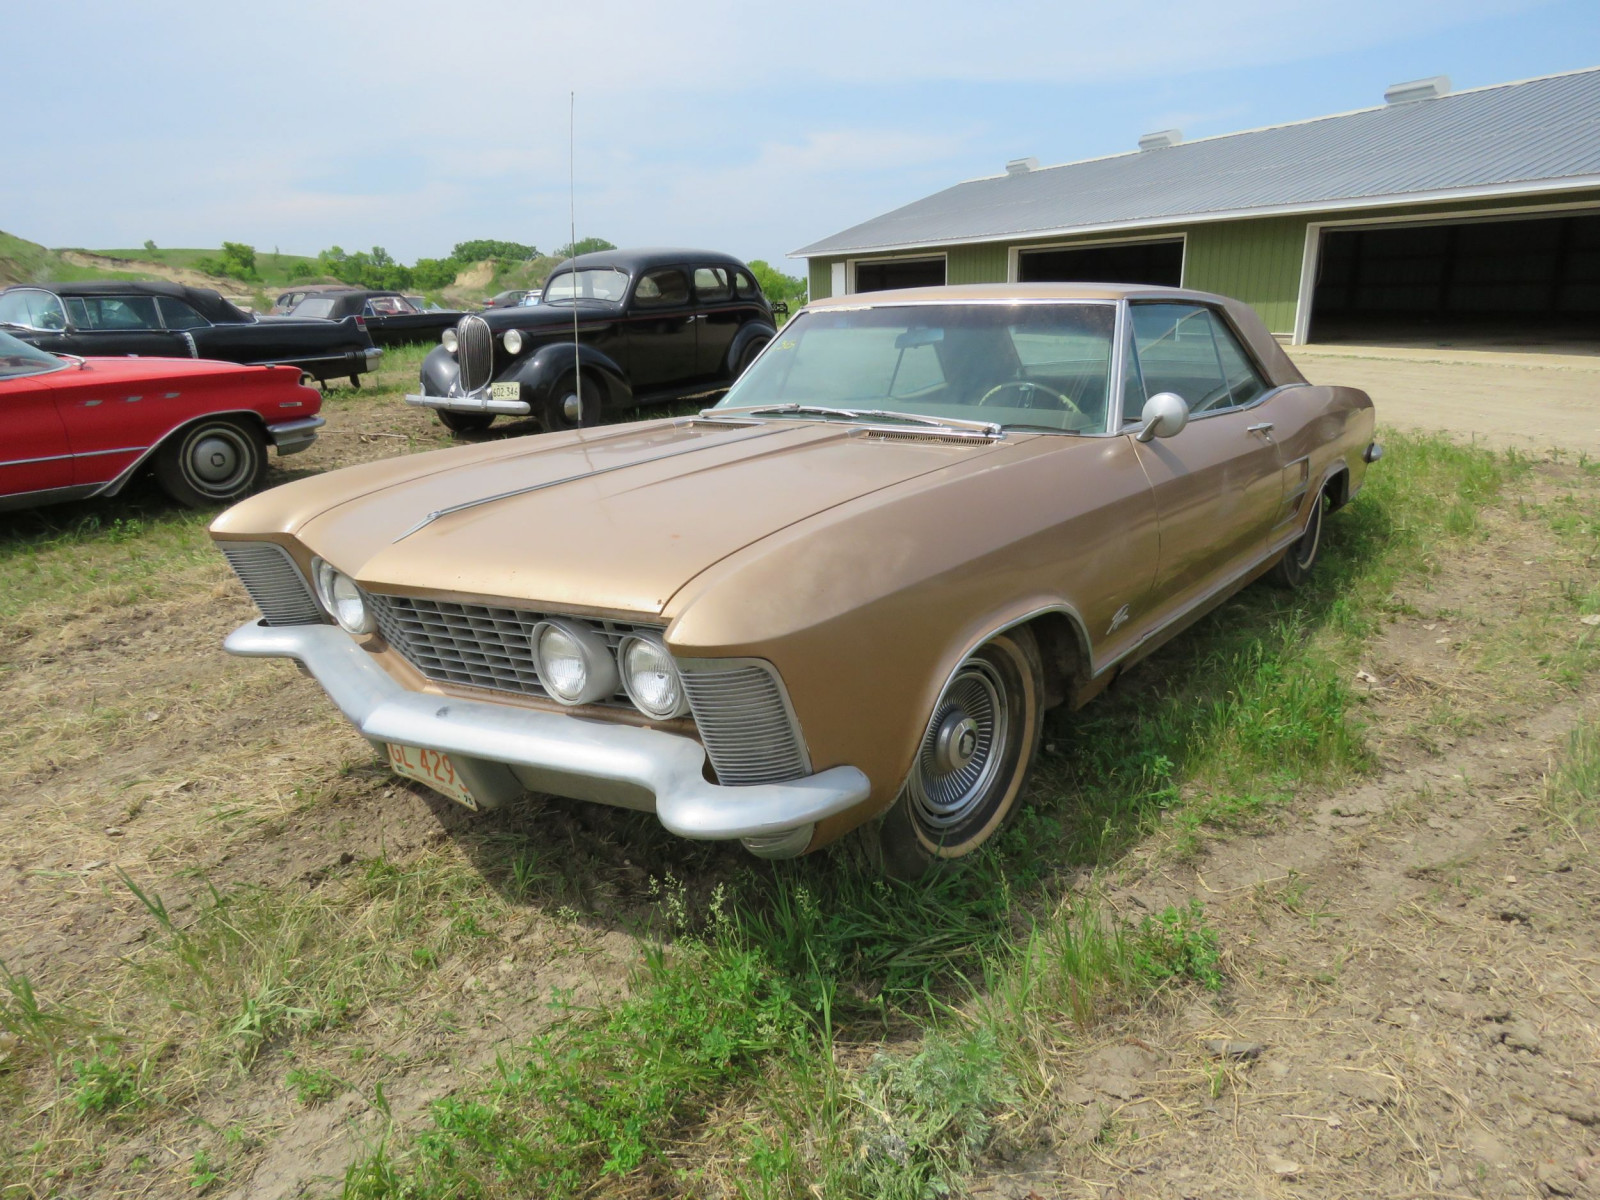 1967 Buick Riviera Coupe 7J1057263 - Image 3